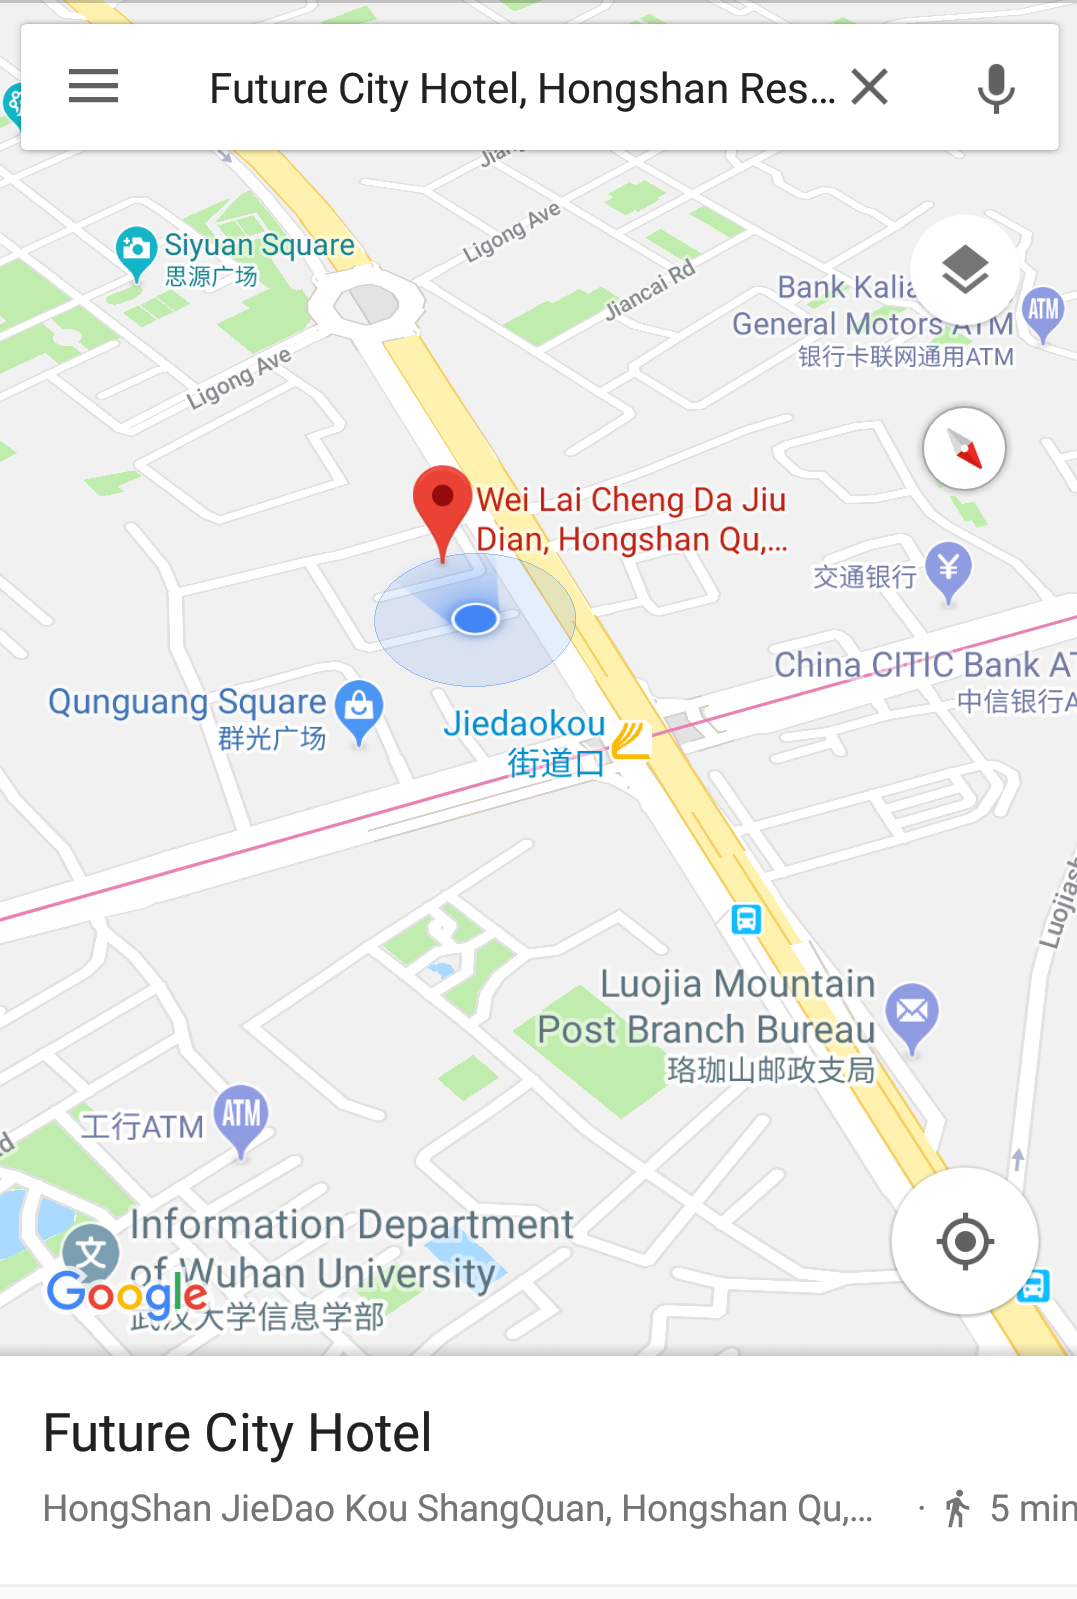 Jiedaokou, Wuhan, China, at the Future City Hotel, Weilai Cheng Da Luguan, Google Maps, Android